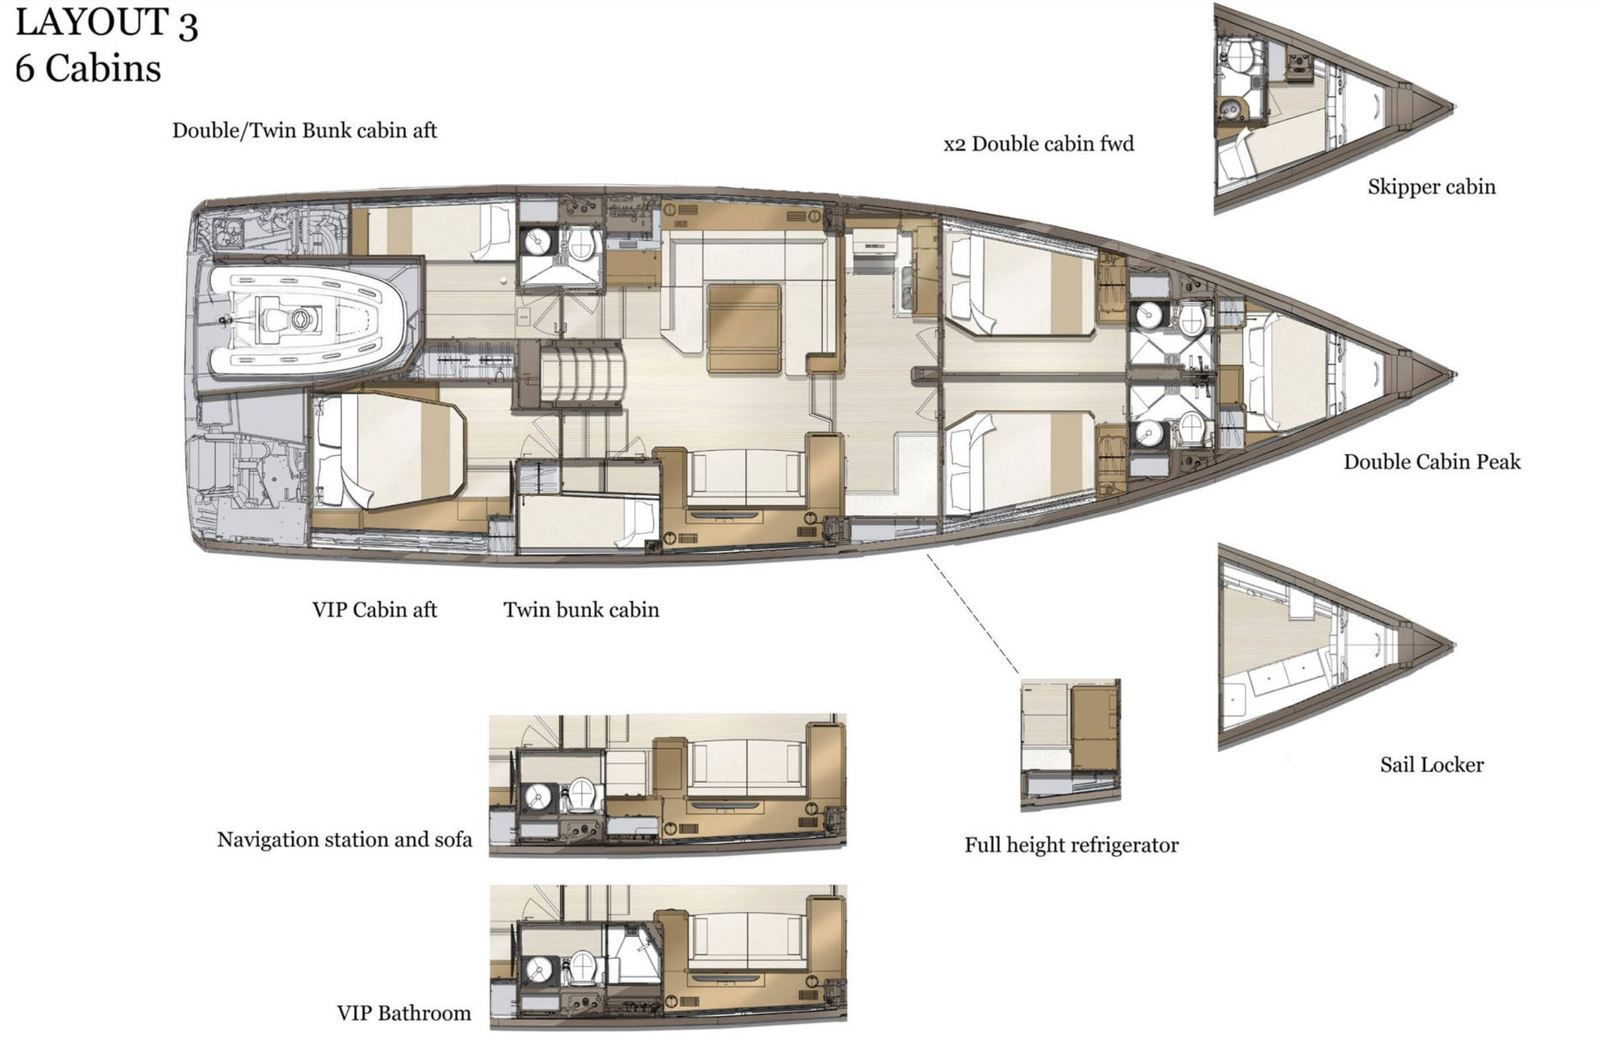 Yachting - the new Jeanneau Yachts 60 changes style and goes semi-custom